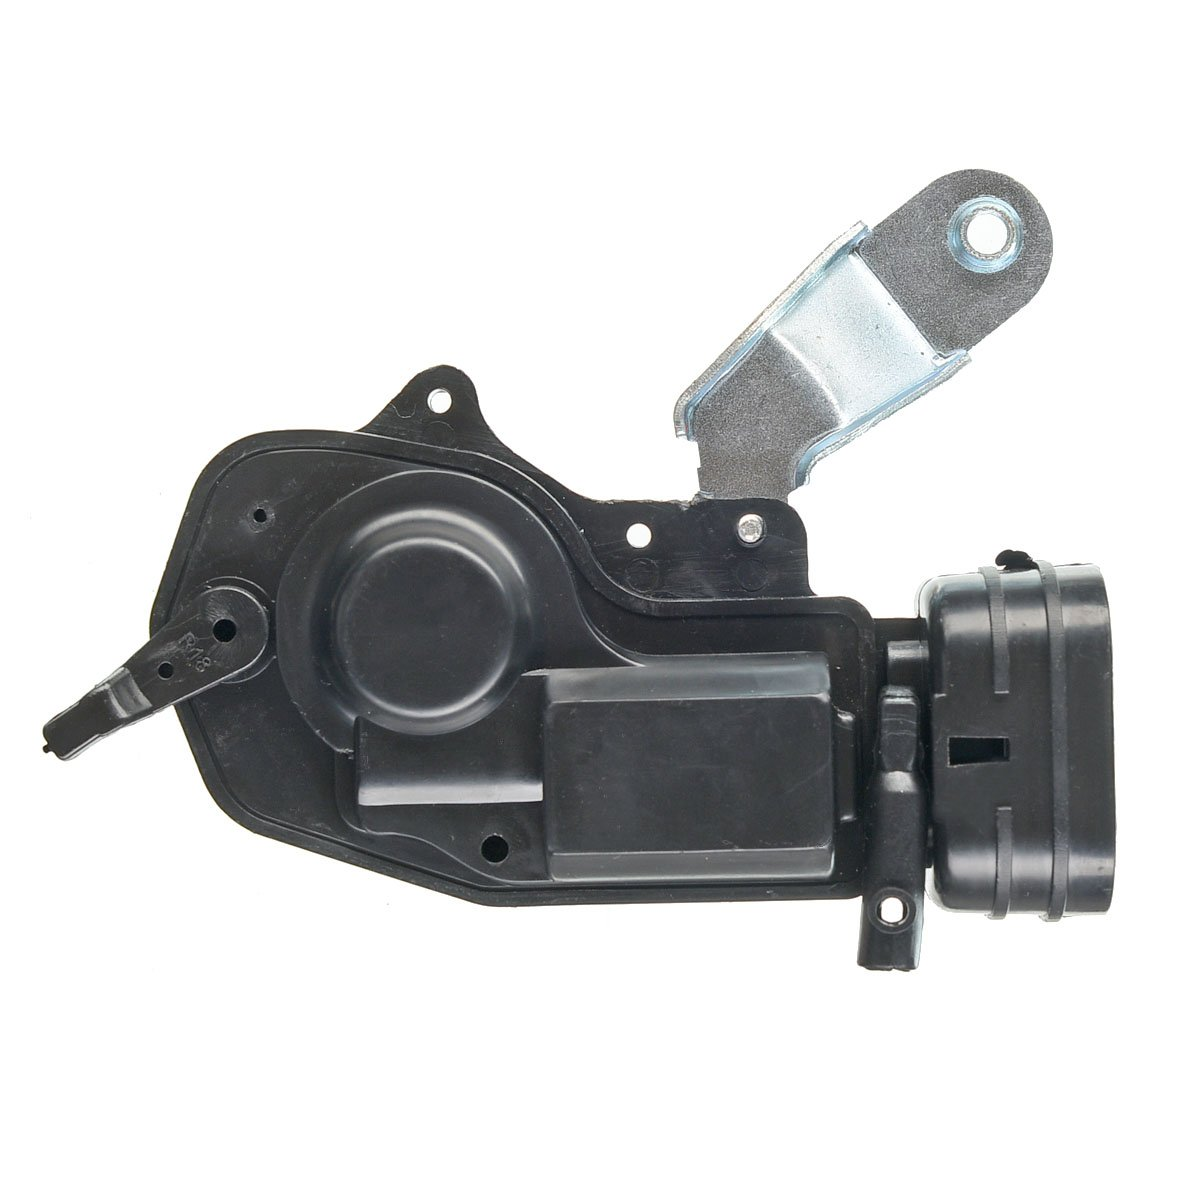 Corolla door lock actuator